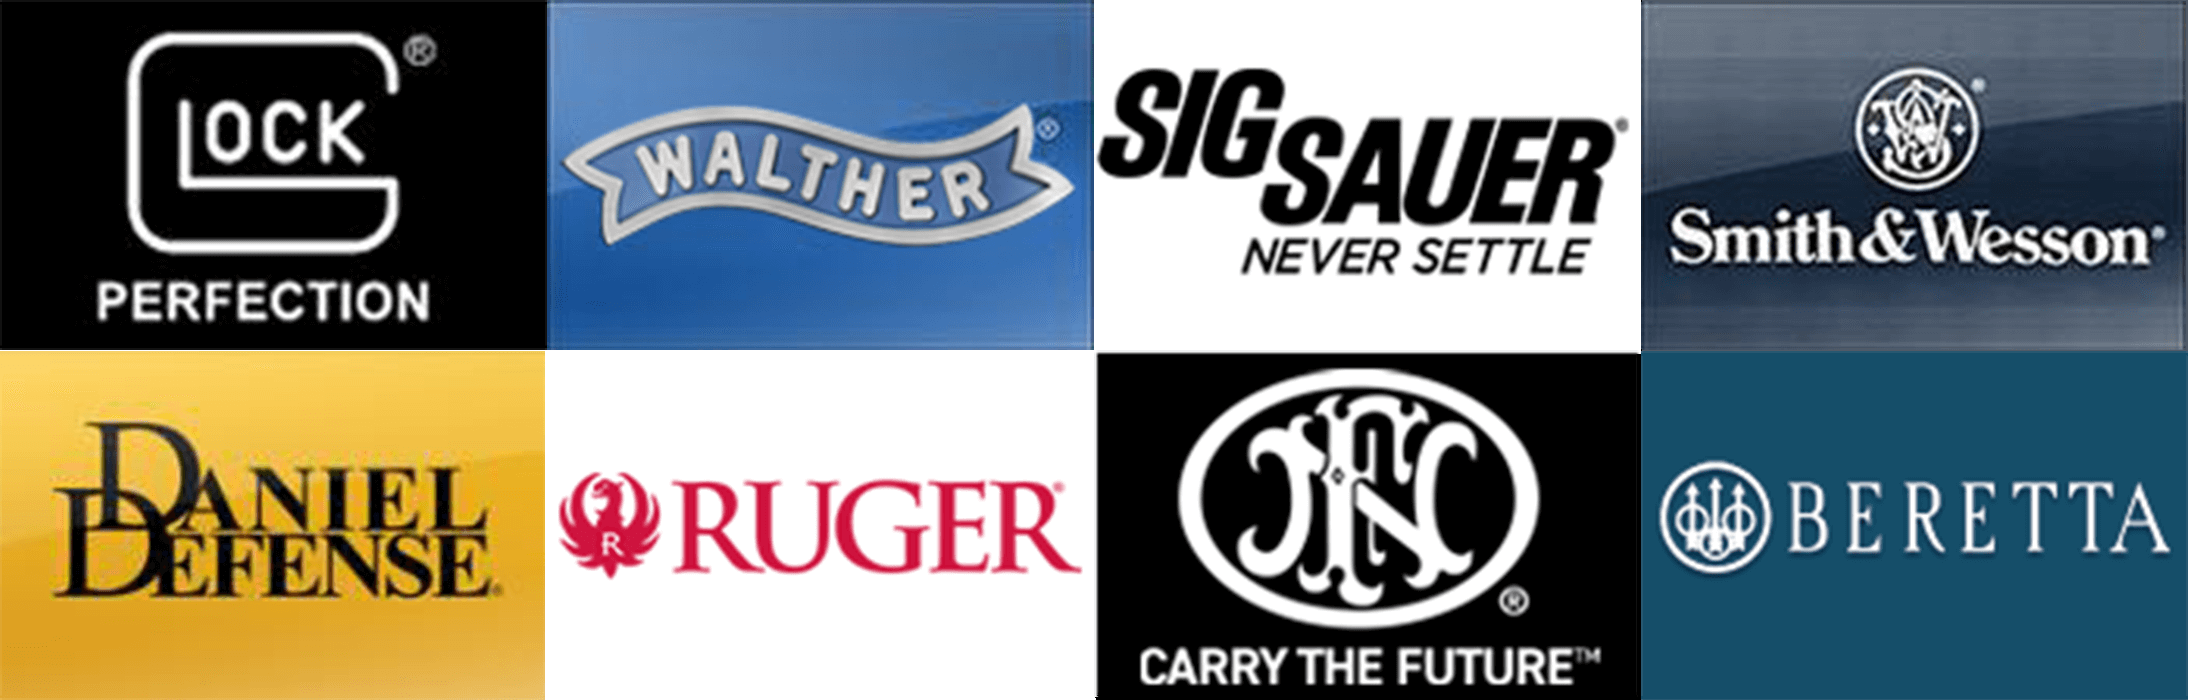 Glock,  walther, sig sauer, smith and wesson, Daniel defense, ruger, fn, beretta